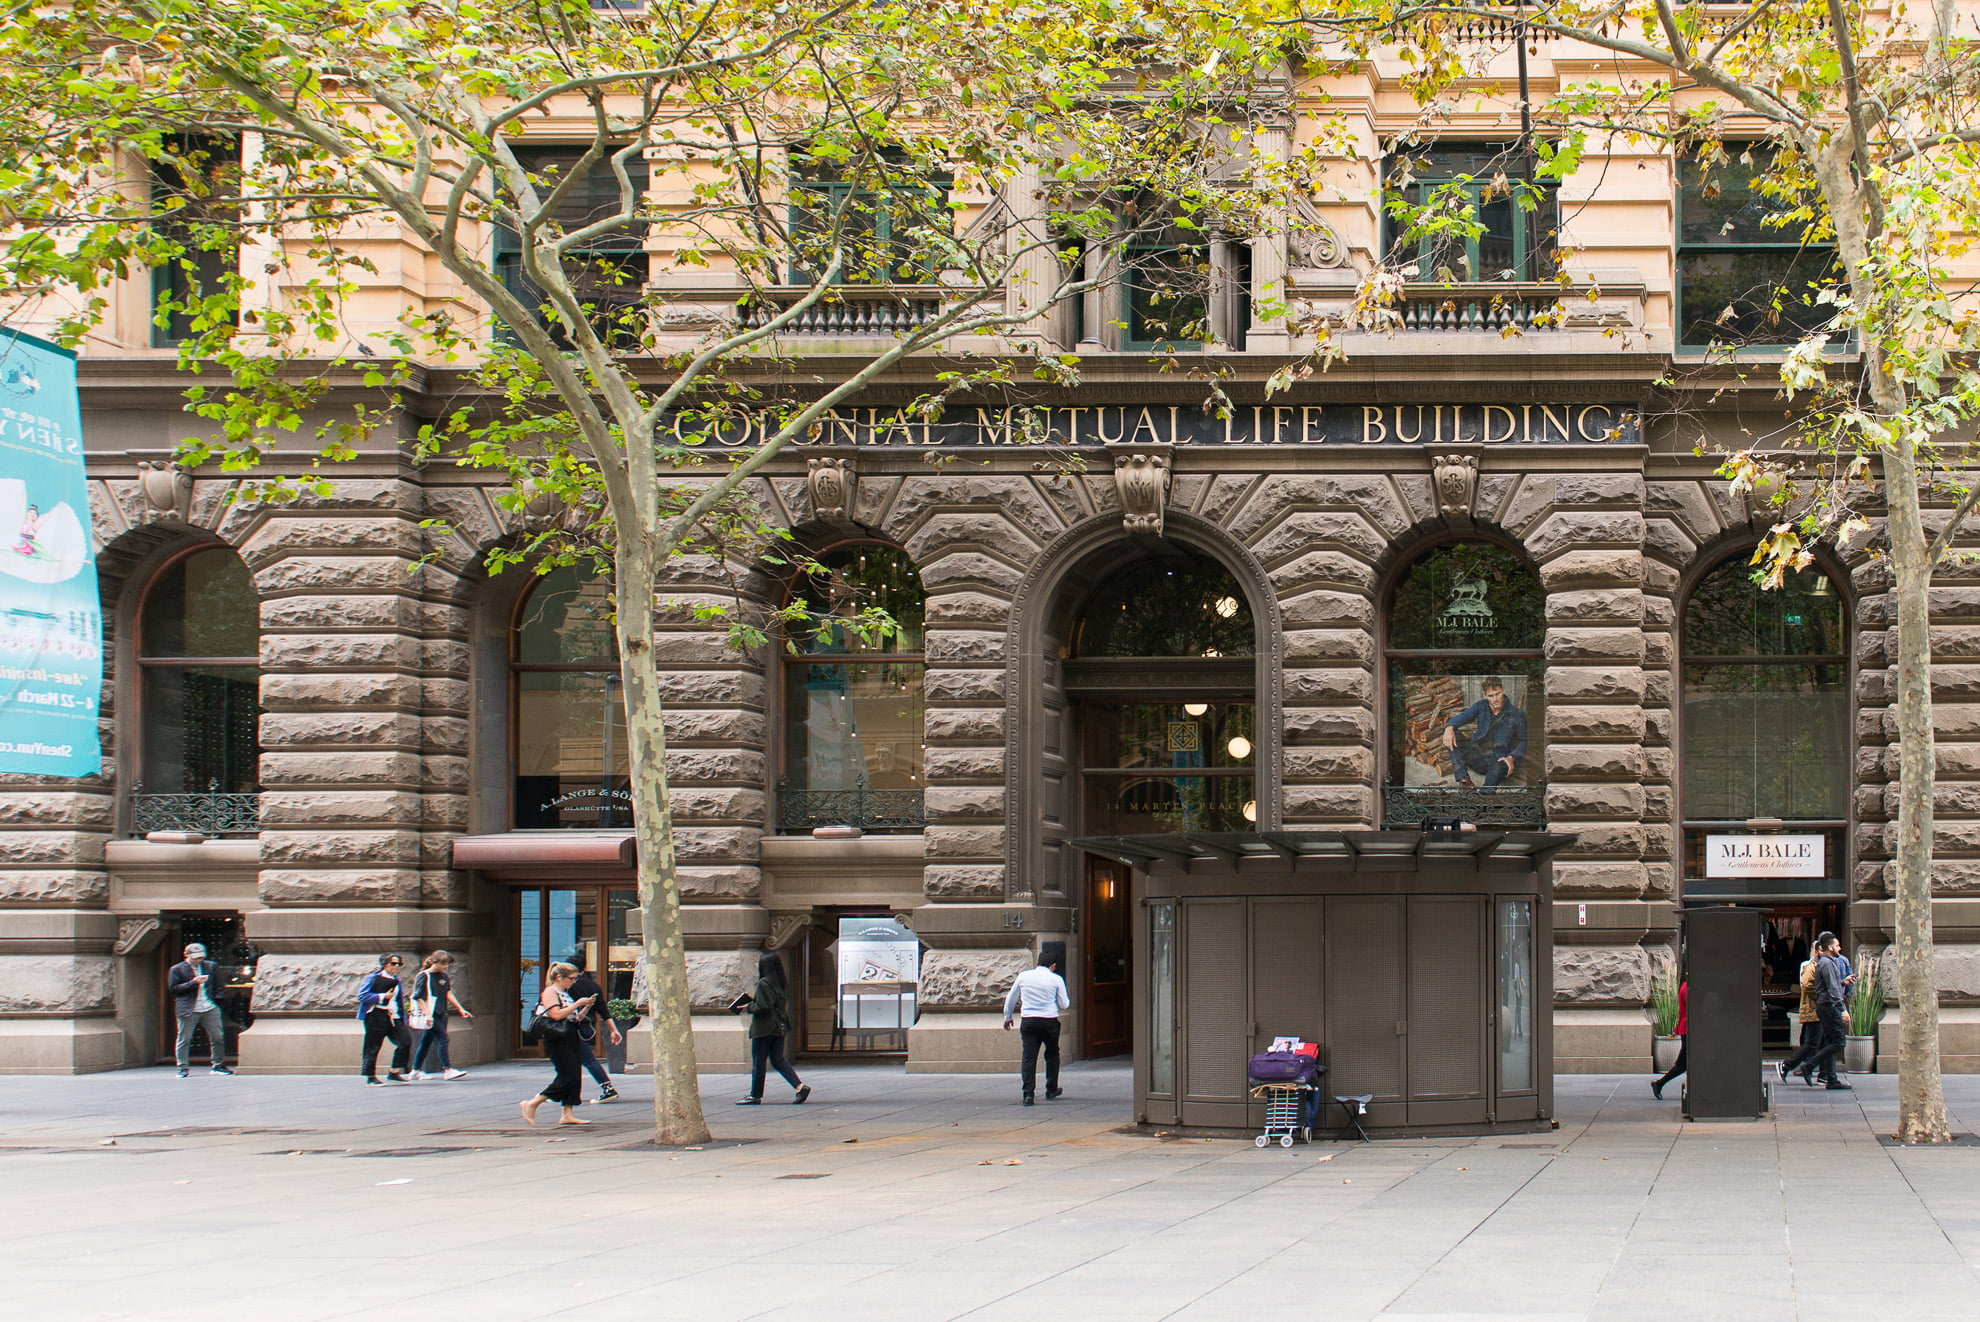 The historical Colonial Mutual Life building